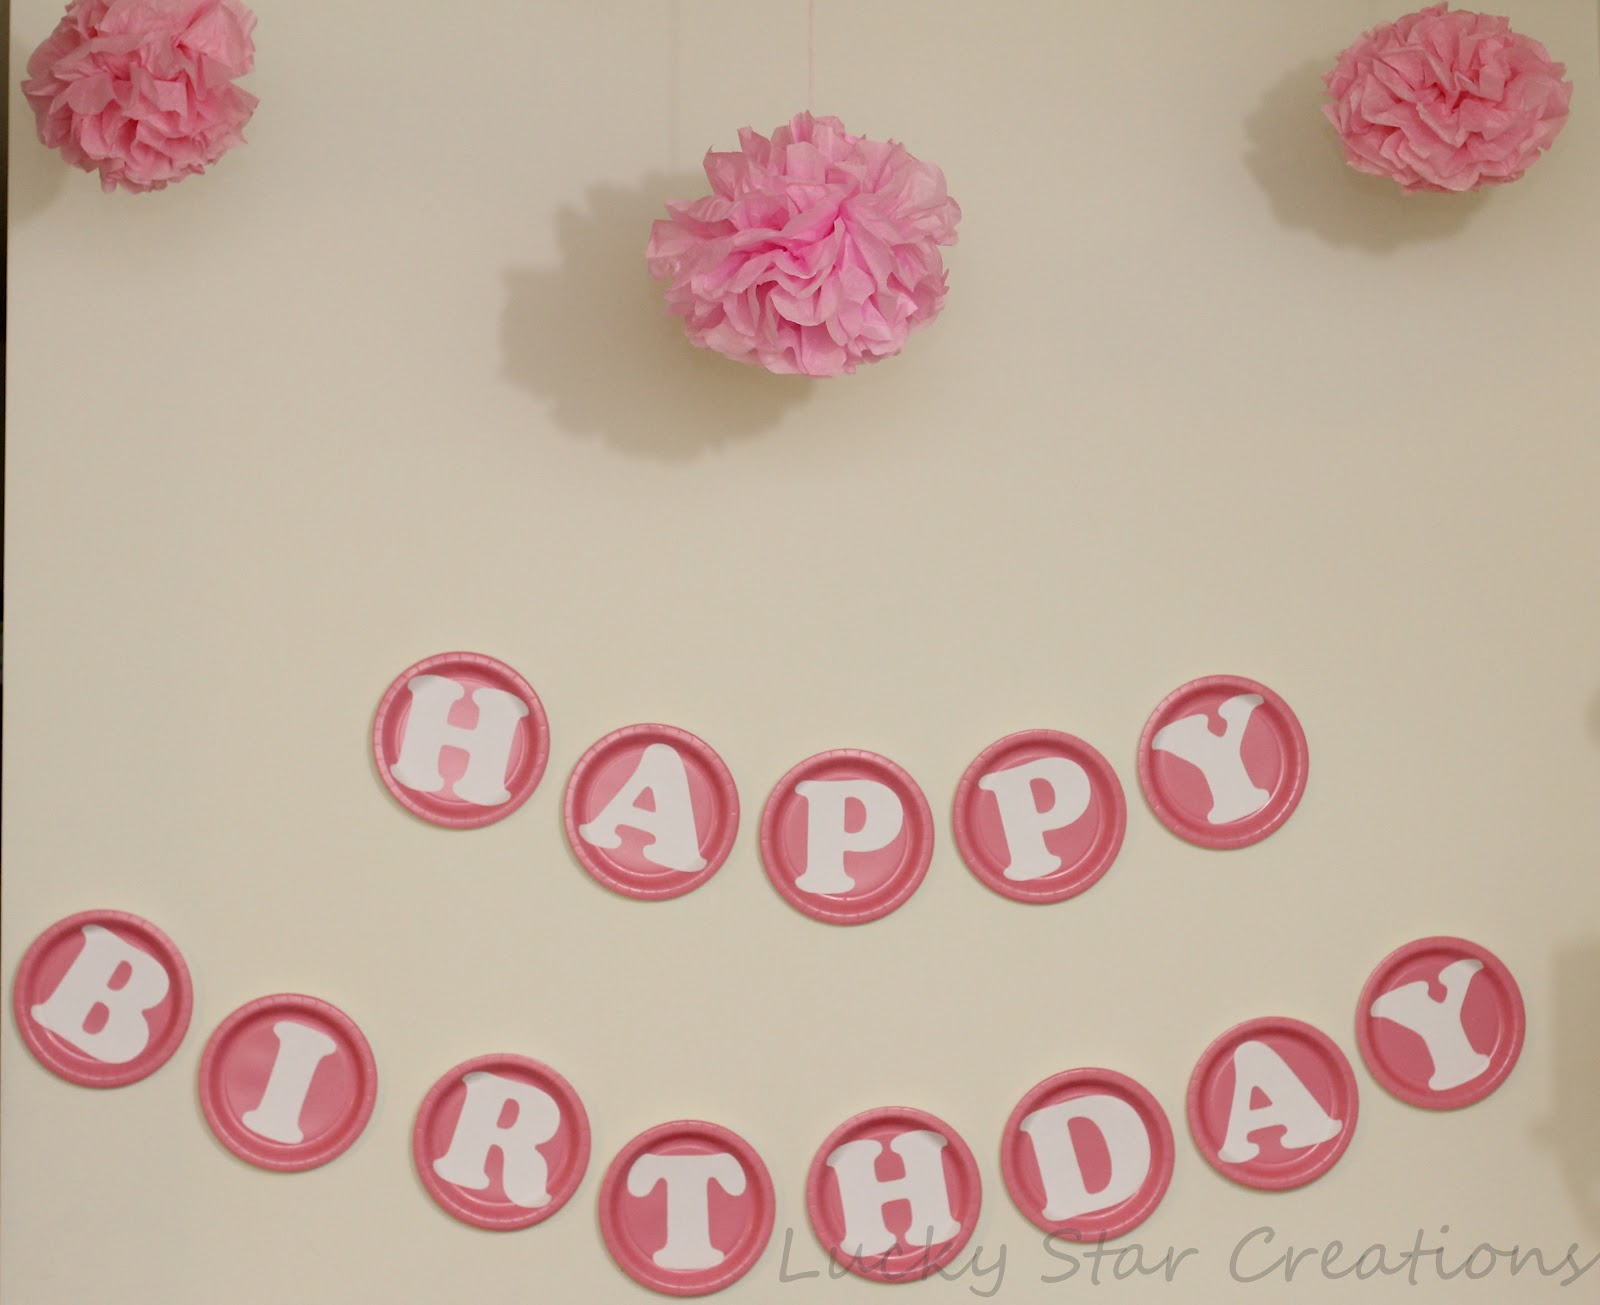 Lucky star creations the blog baby 39 s 1st birthday party for Baby birthday decoration